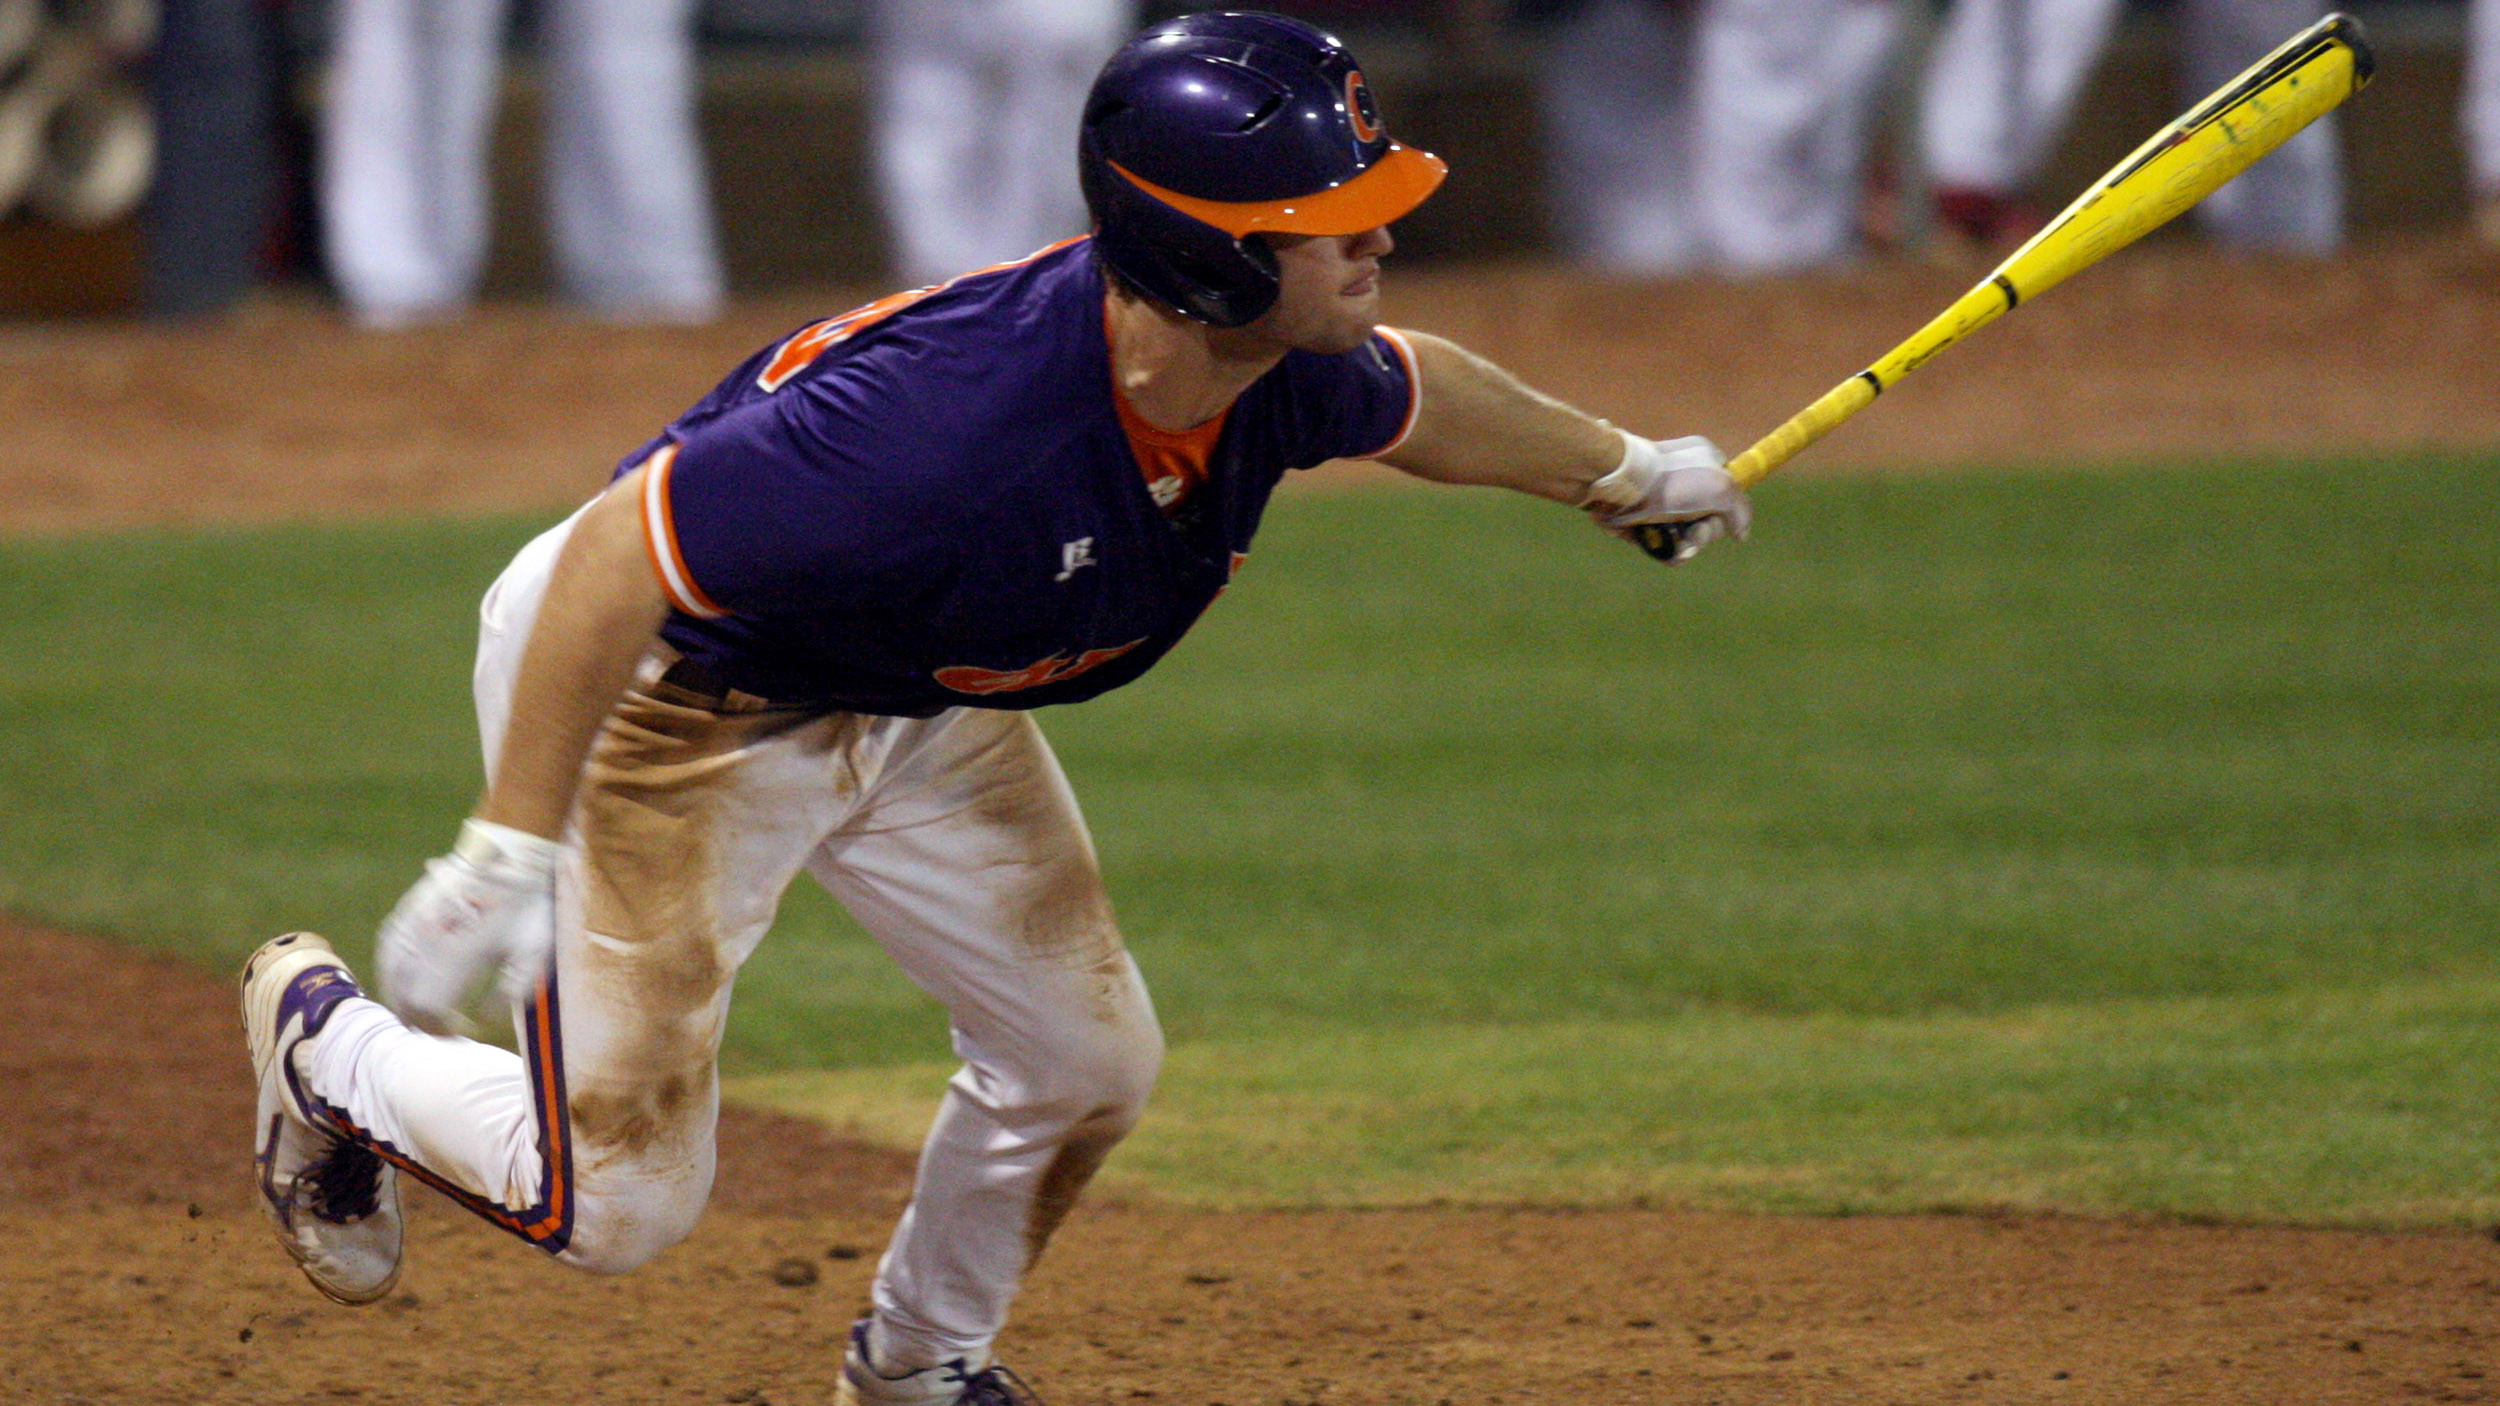 #9 Wolfpack Scores Four Runs in Seventh Inning to Top #14 Tigers 6-3 in ACC Tournament Wednesday